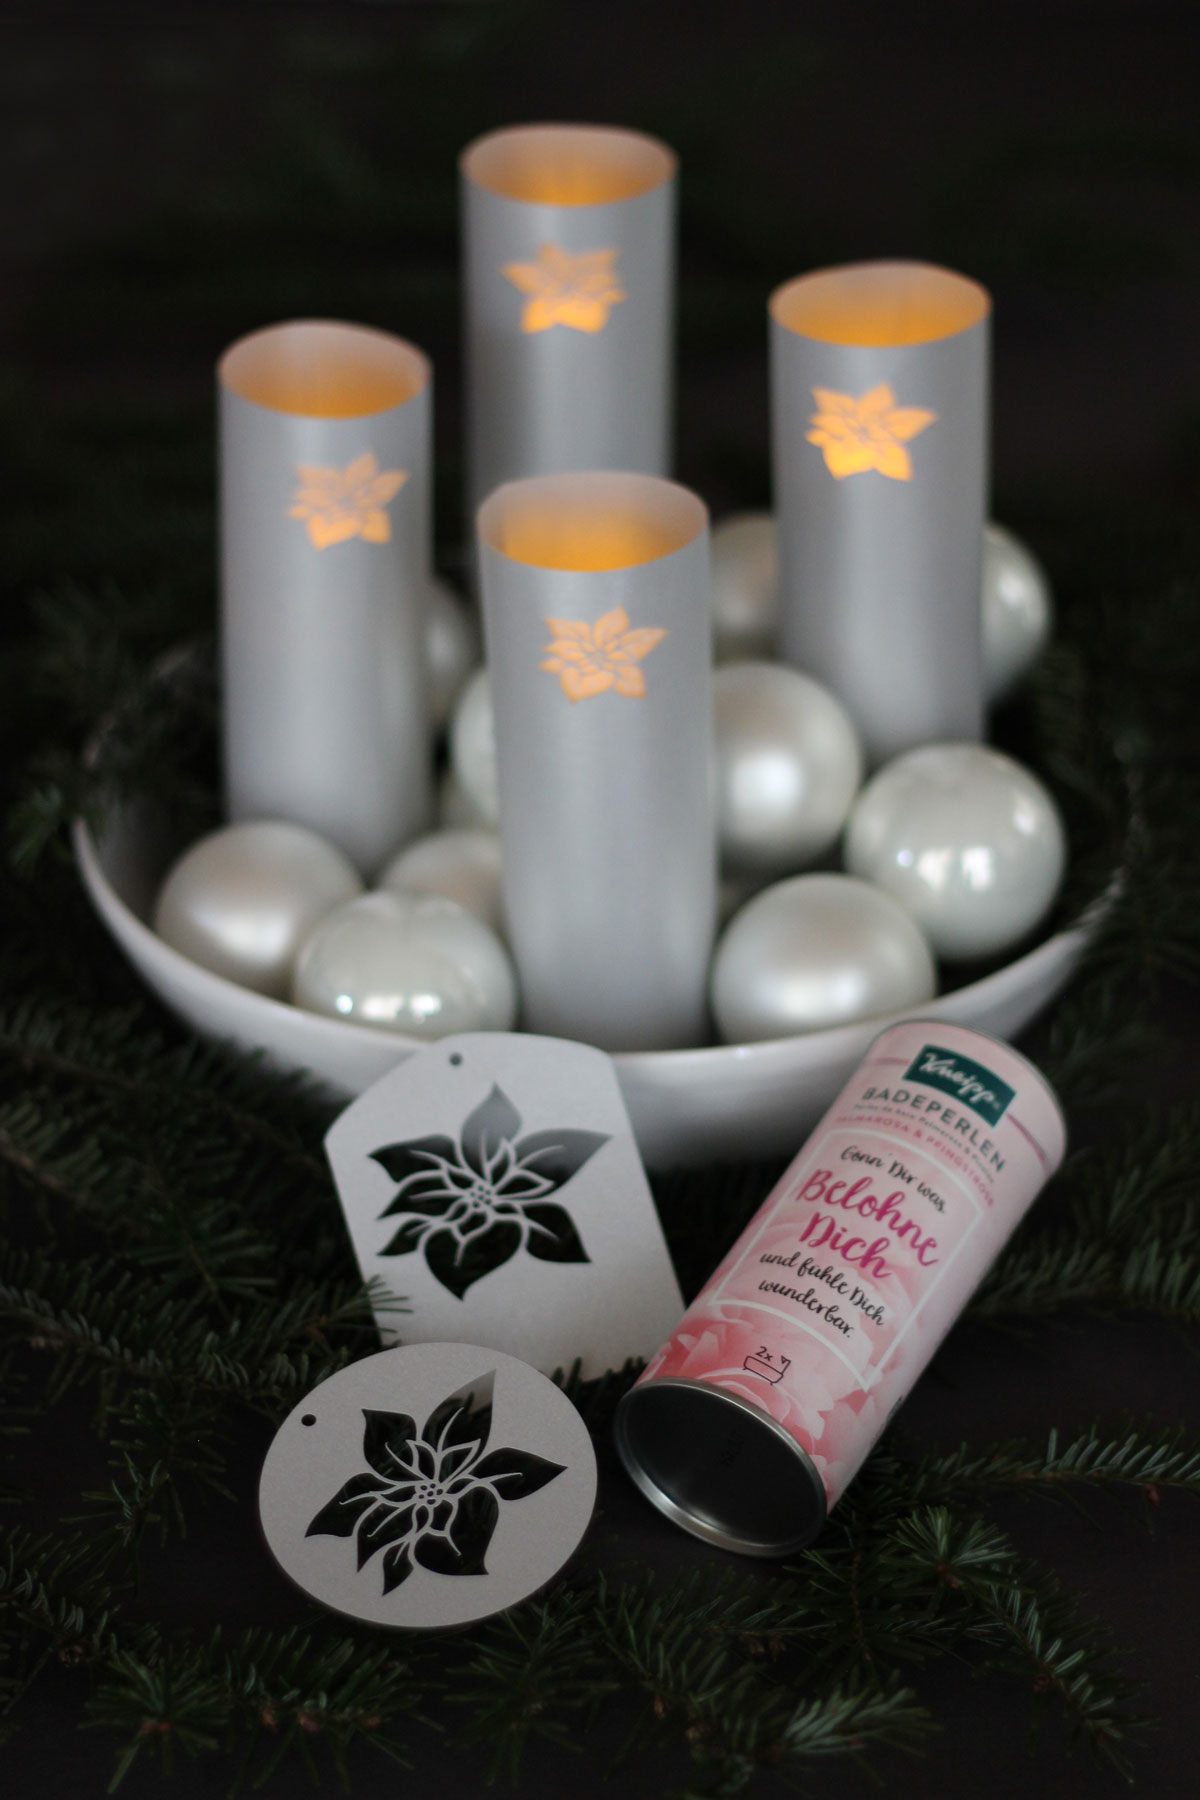 Upcycling-Adventskranz mit Kneipp® Badeperlen